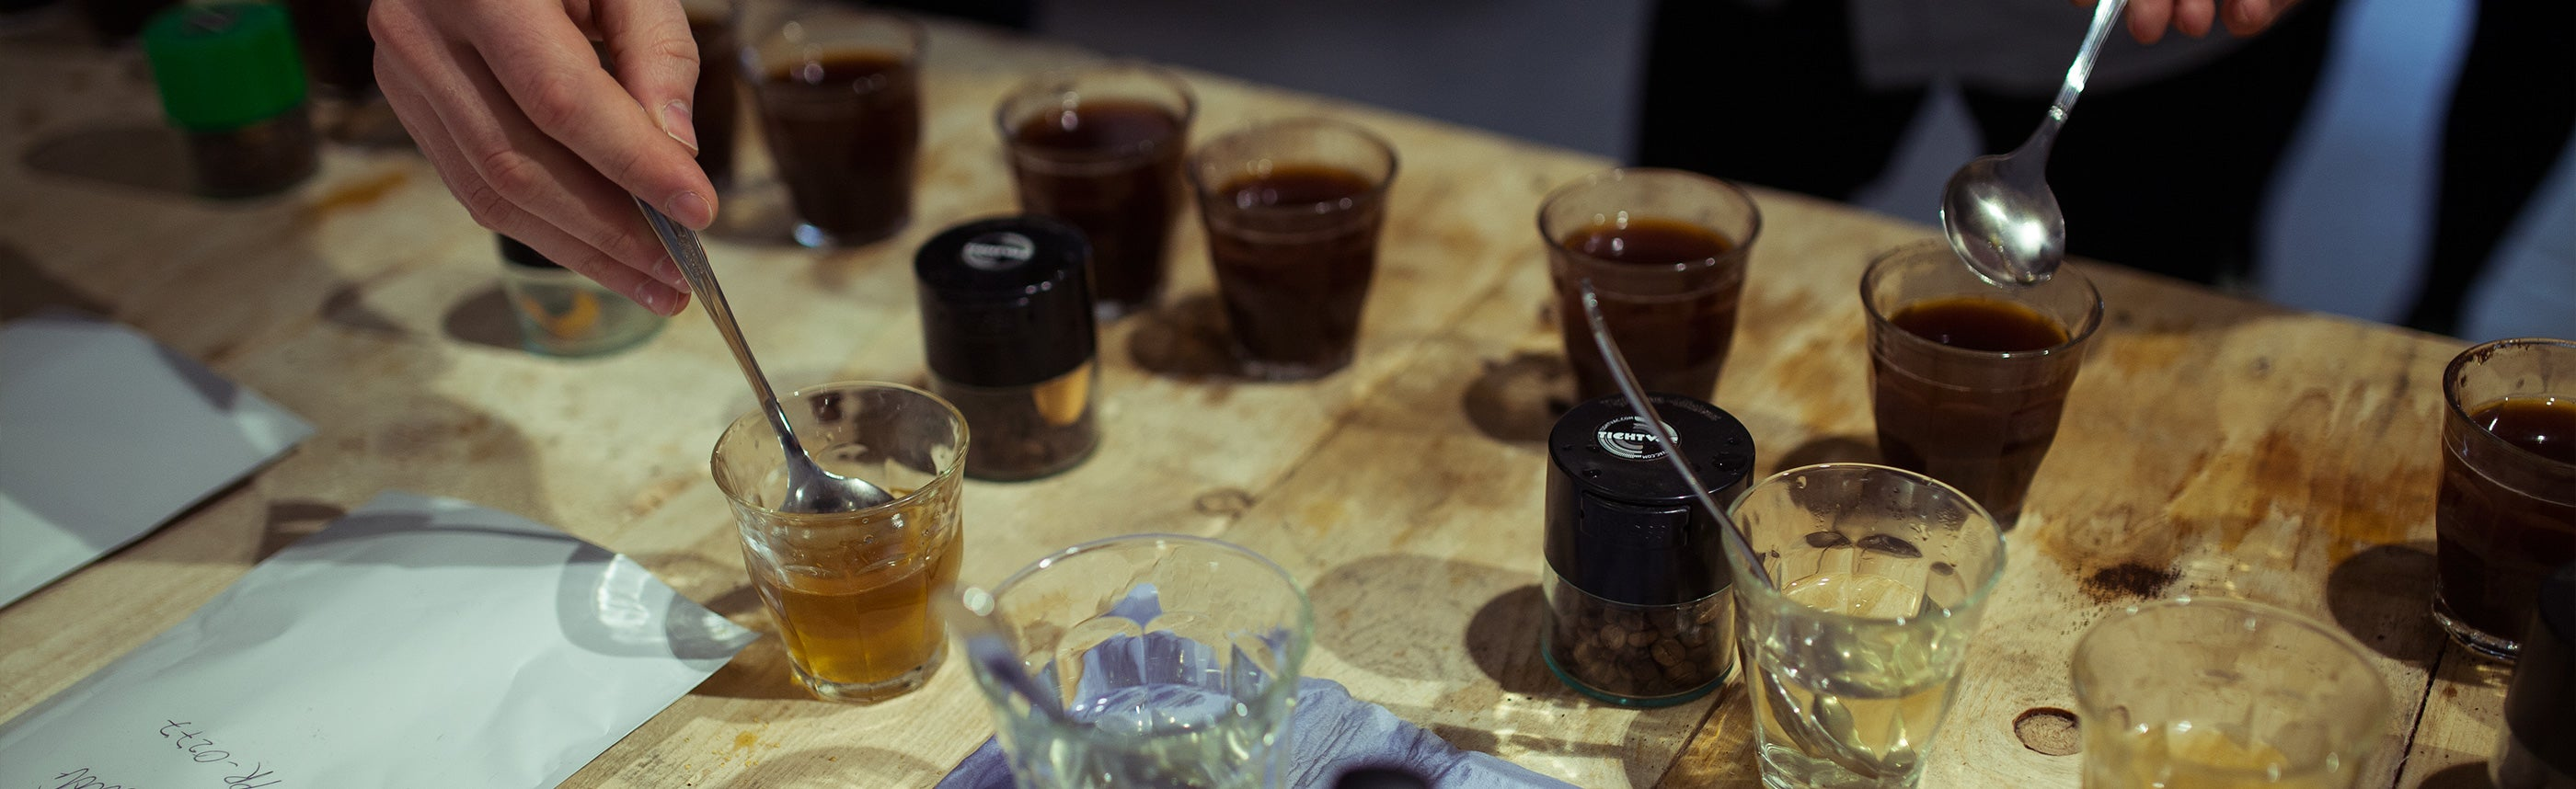 Coffee Classes, Events & Pop-Ups